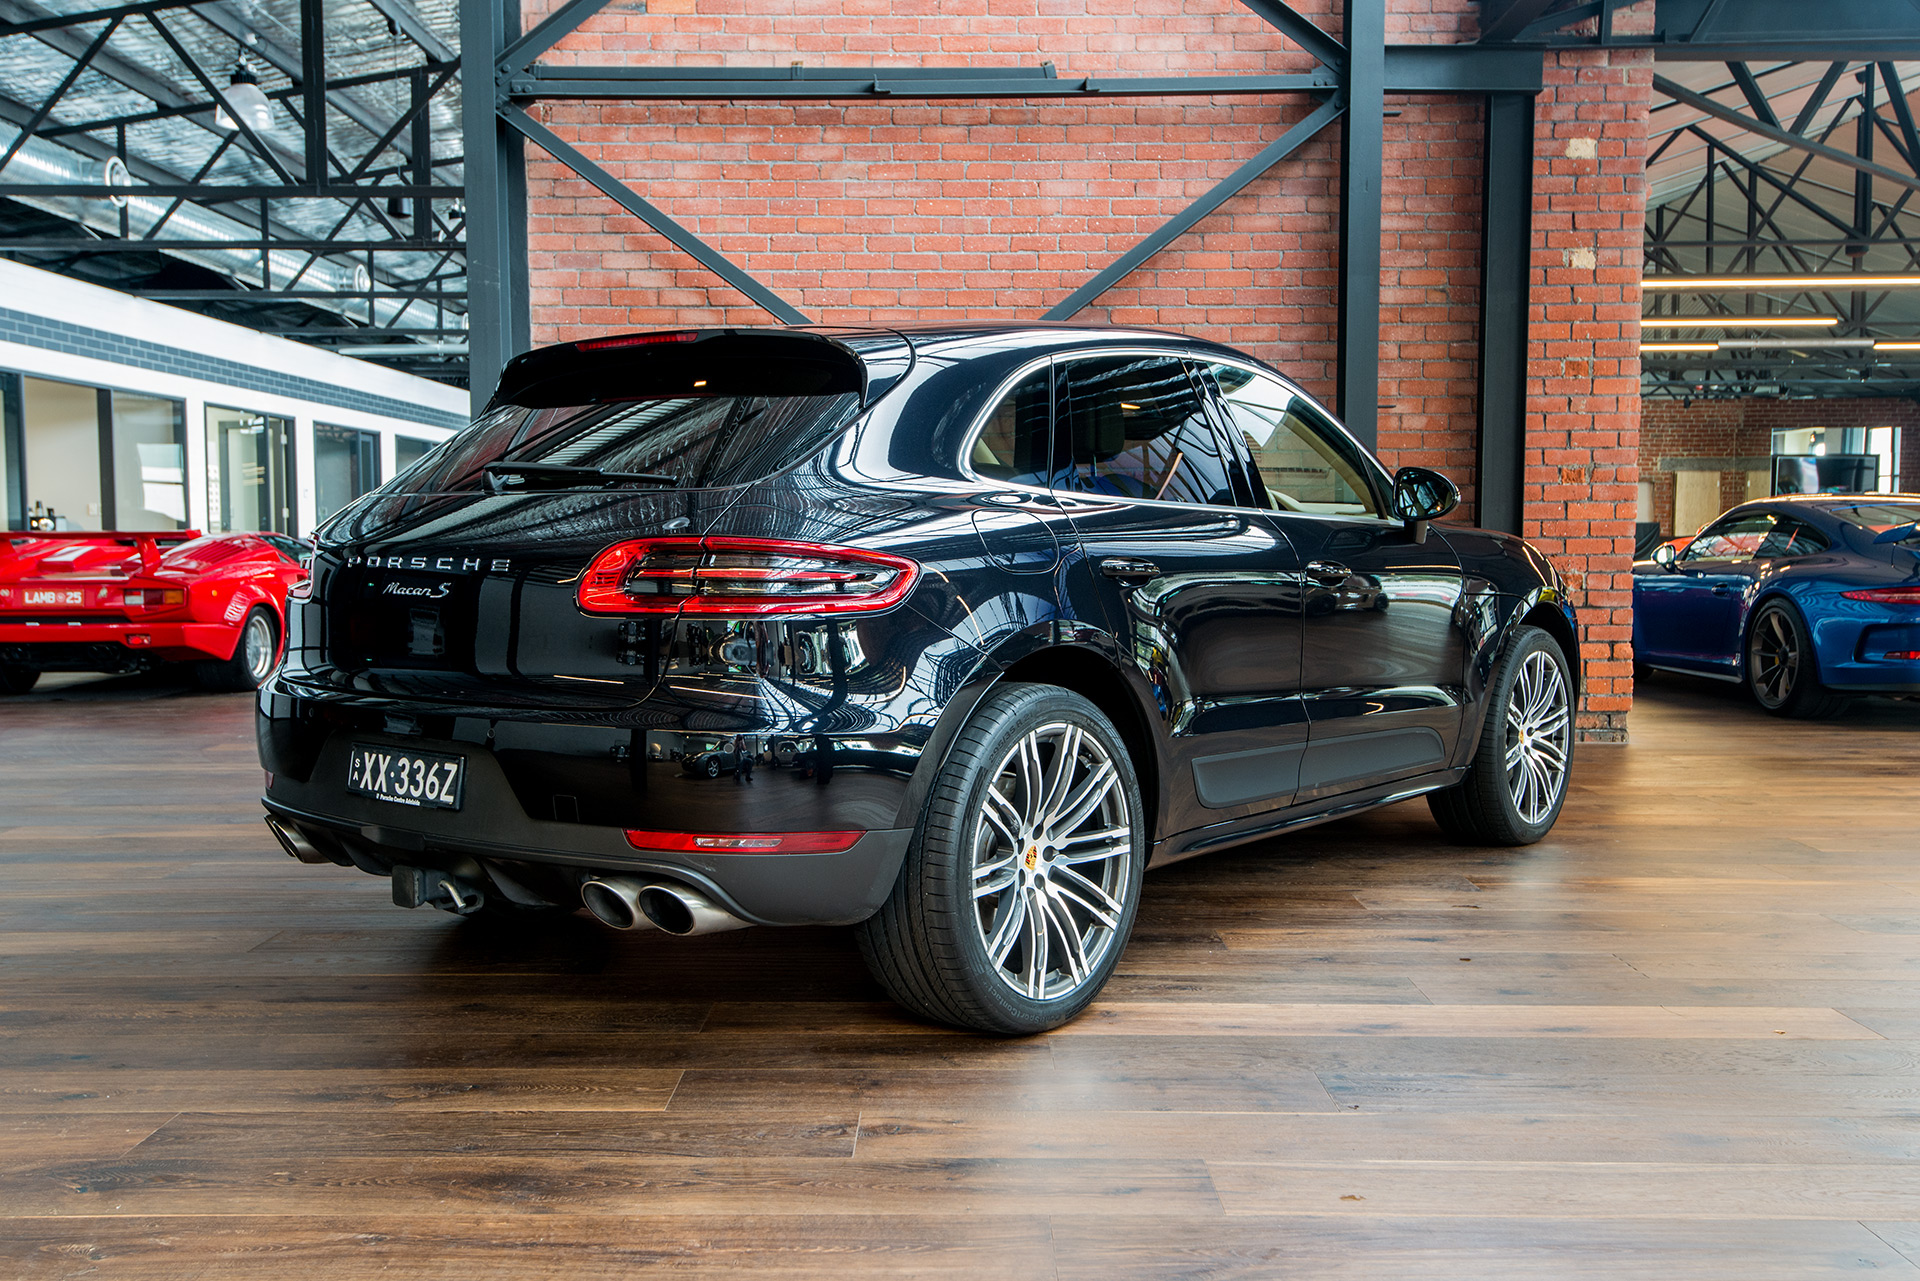 What Is Suspension In Car >> 2014 Porsche Macan S (MY15) - Richmonds - Classic and